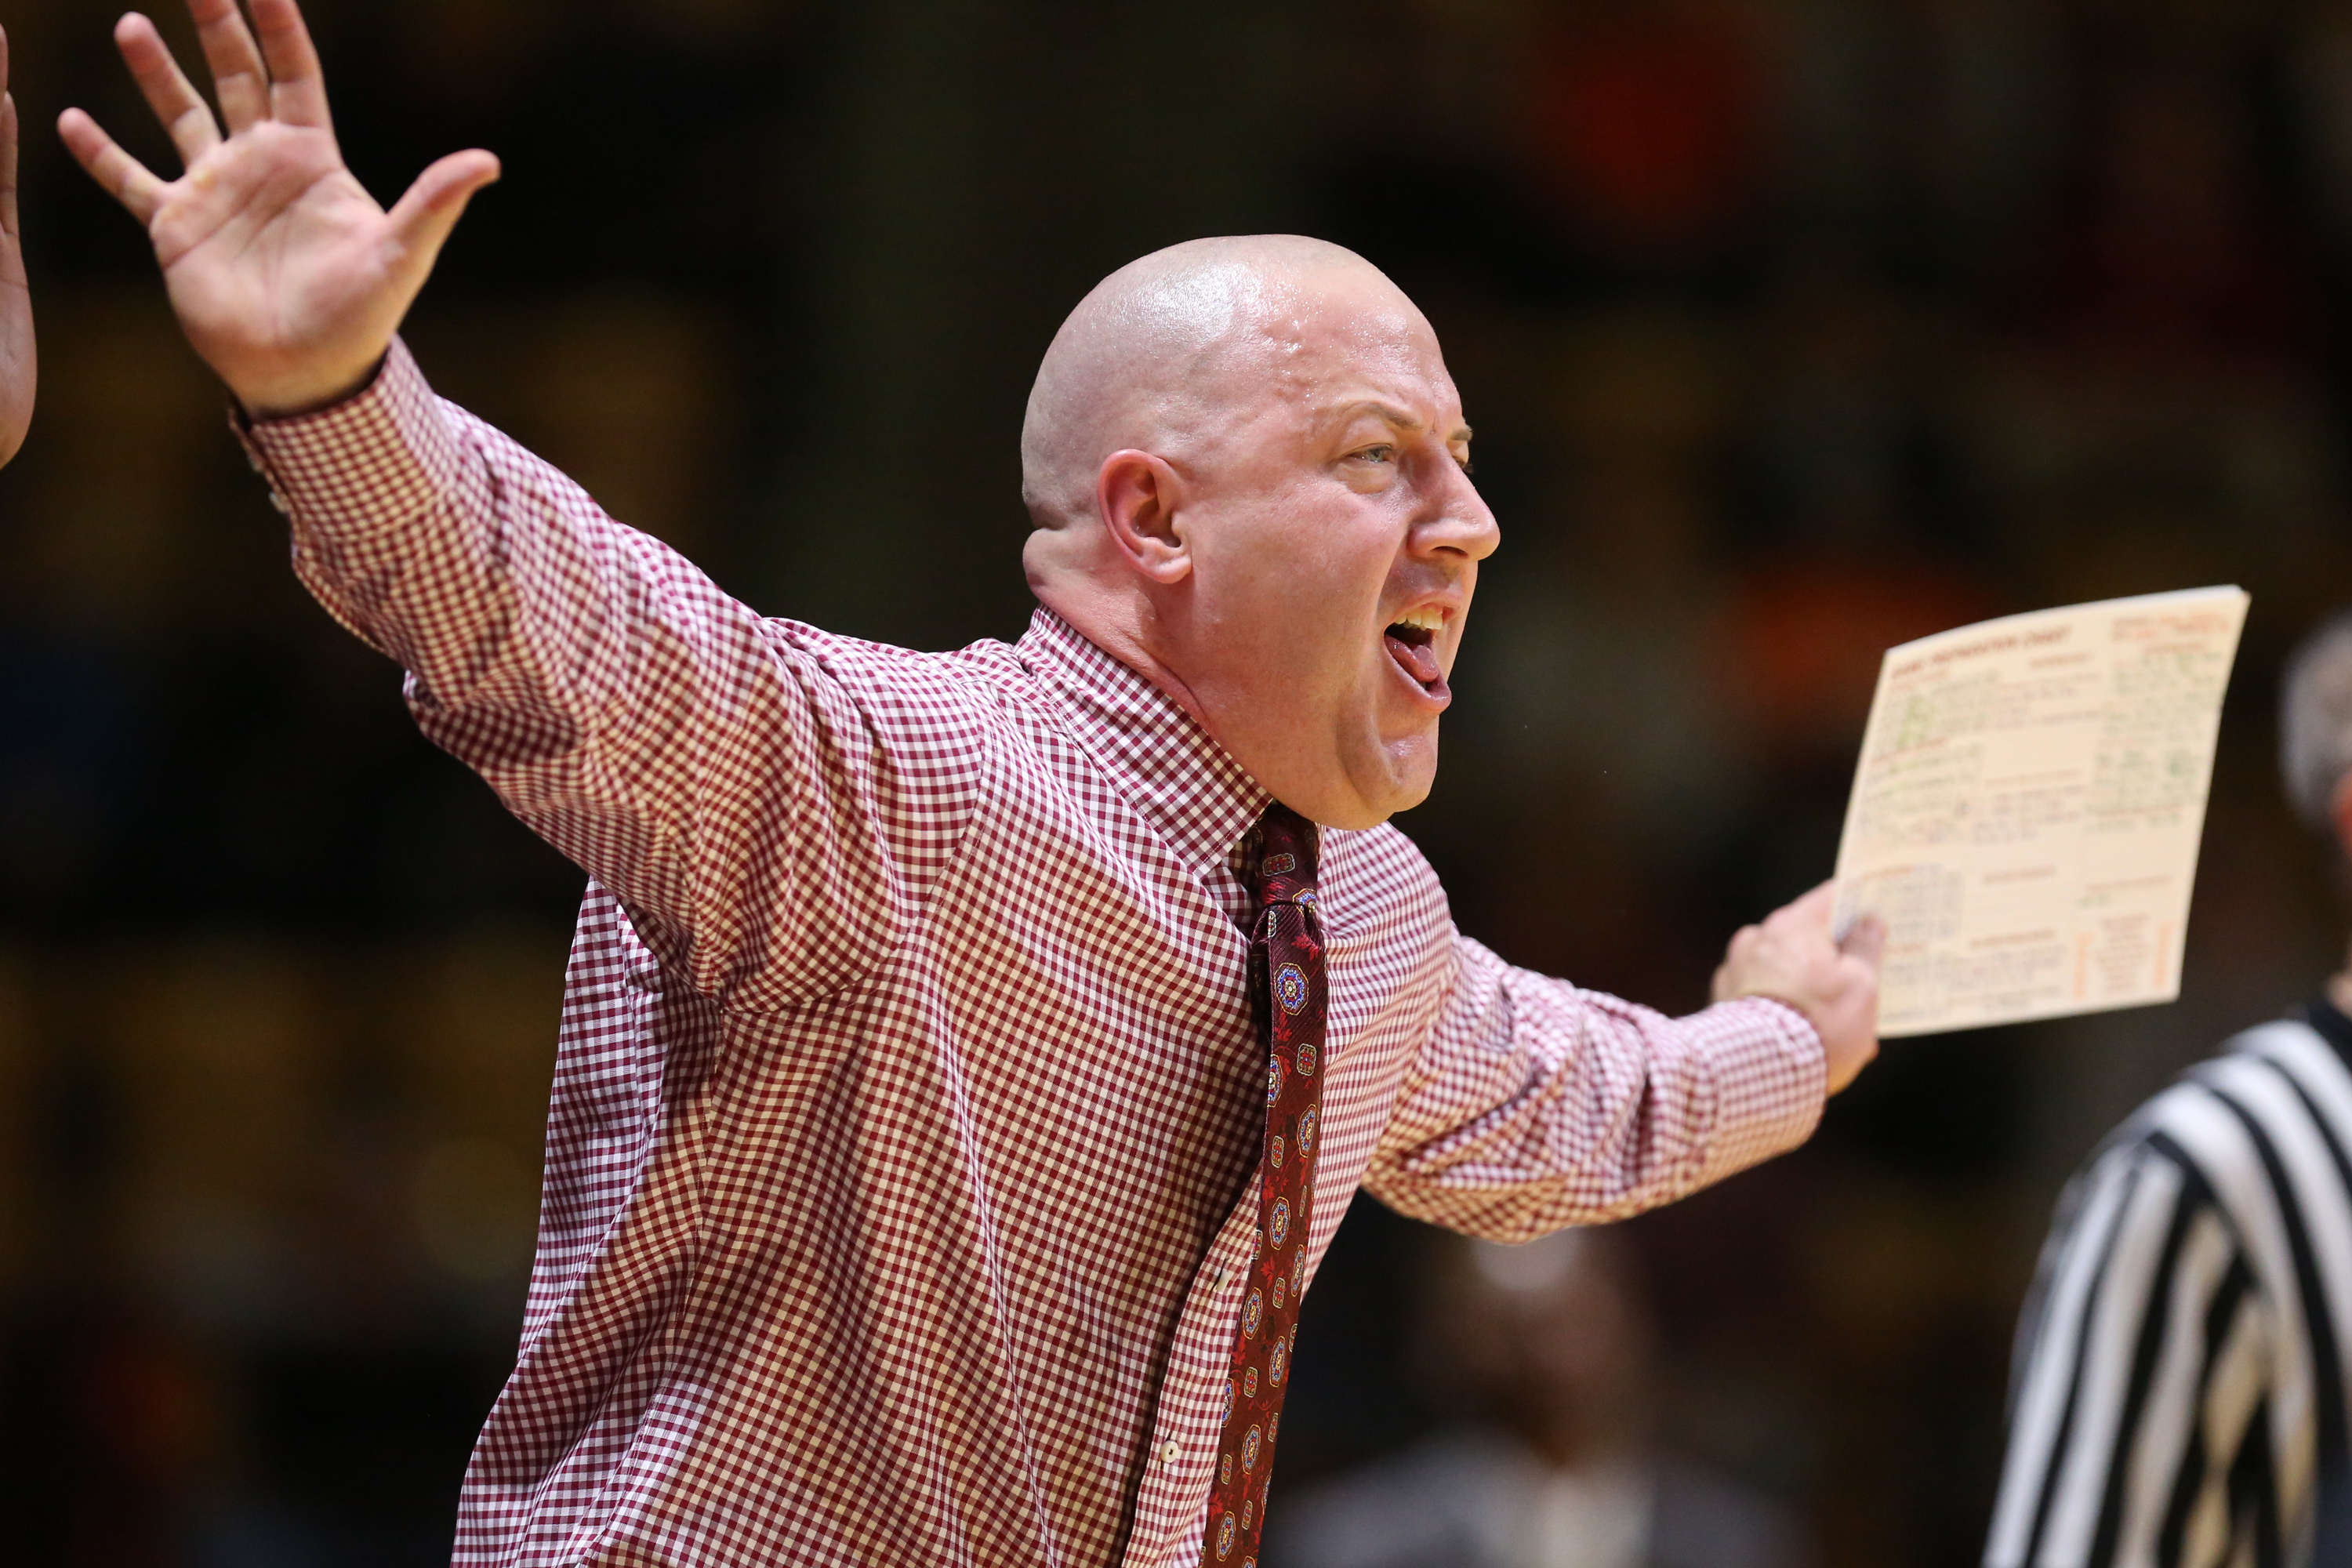 Virginia Tech head coach Buzz Williams yells from the sideline during an NCAA college basketball game against Wake Forest in Blacksburg Va., Wednesday, Jan. 13, 2016. (Matt Gentry/The Roanoke Times via AP) LOCAL TELEVISION OUT; SALEM TIMES REGISTER OUT; F